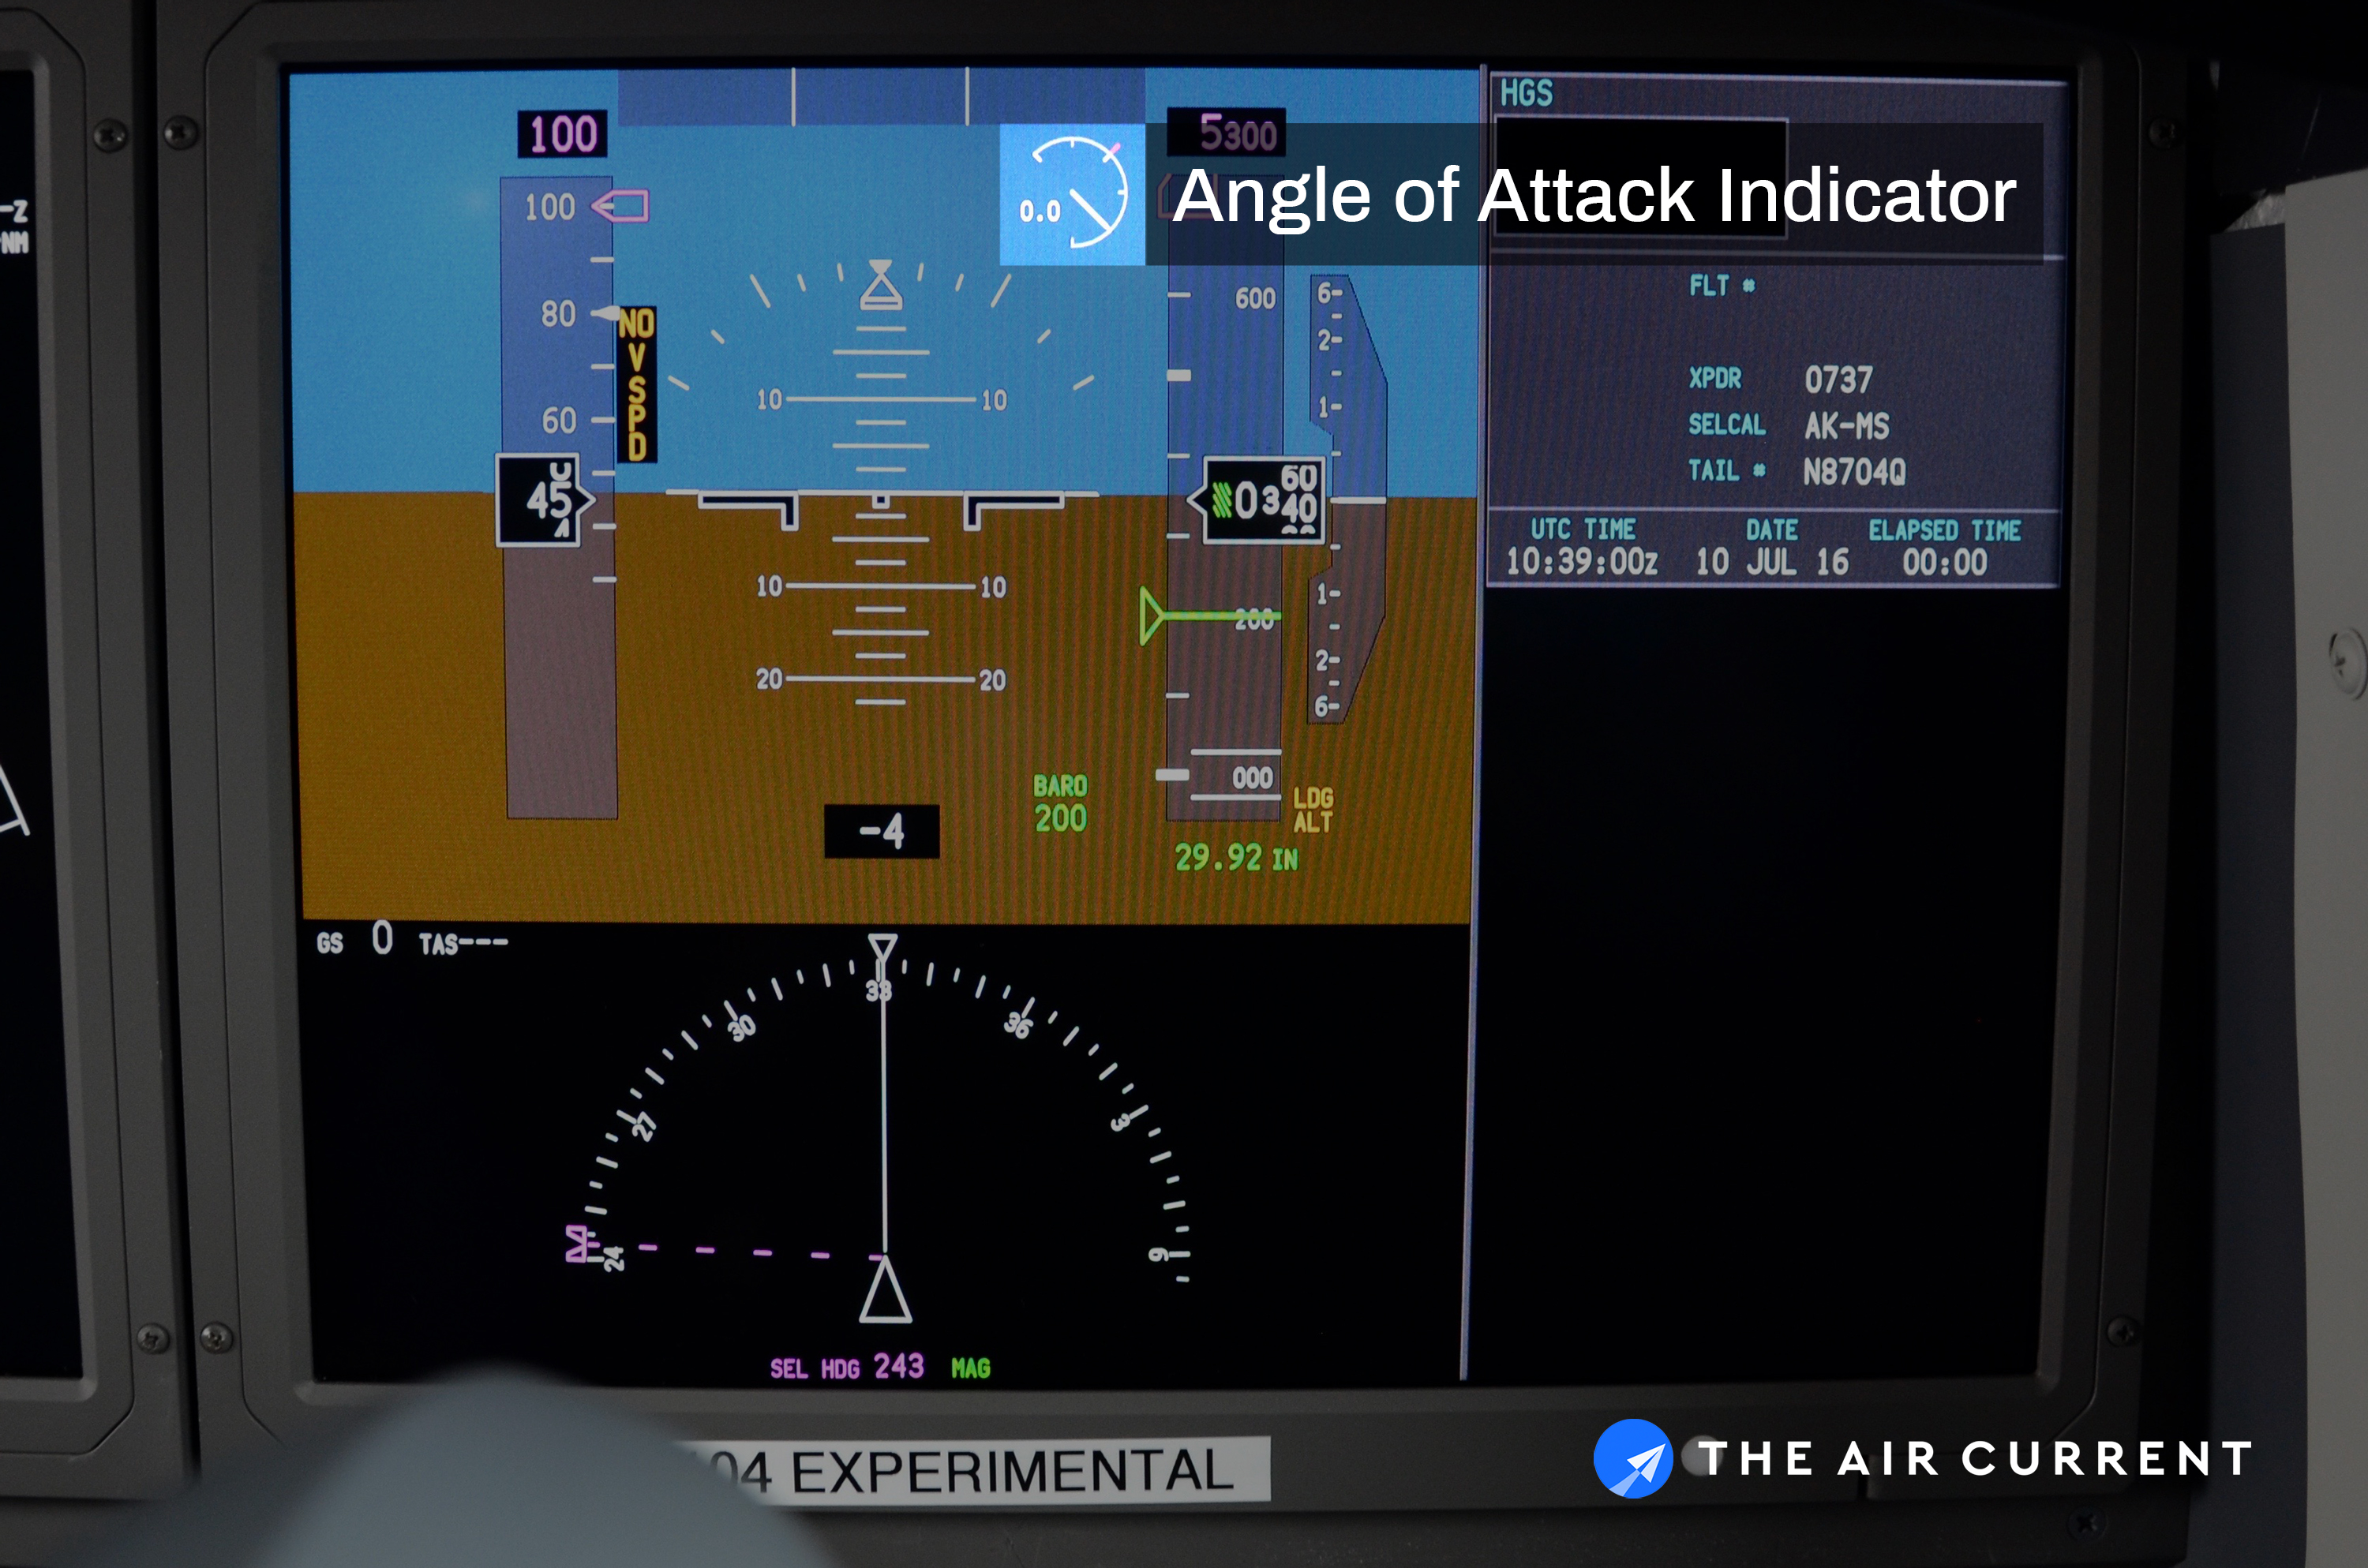 Southwest is adding new angle of attack indicators to its